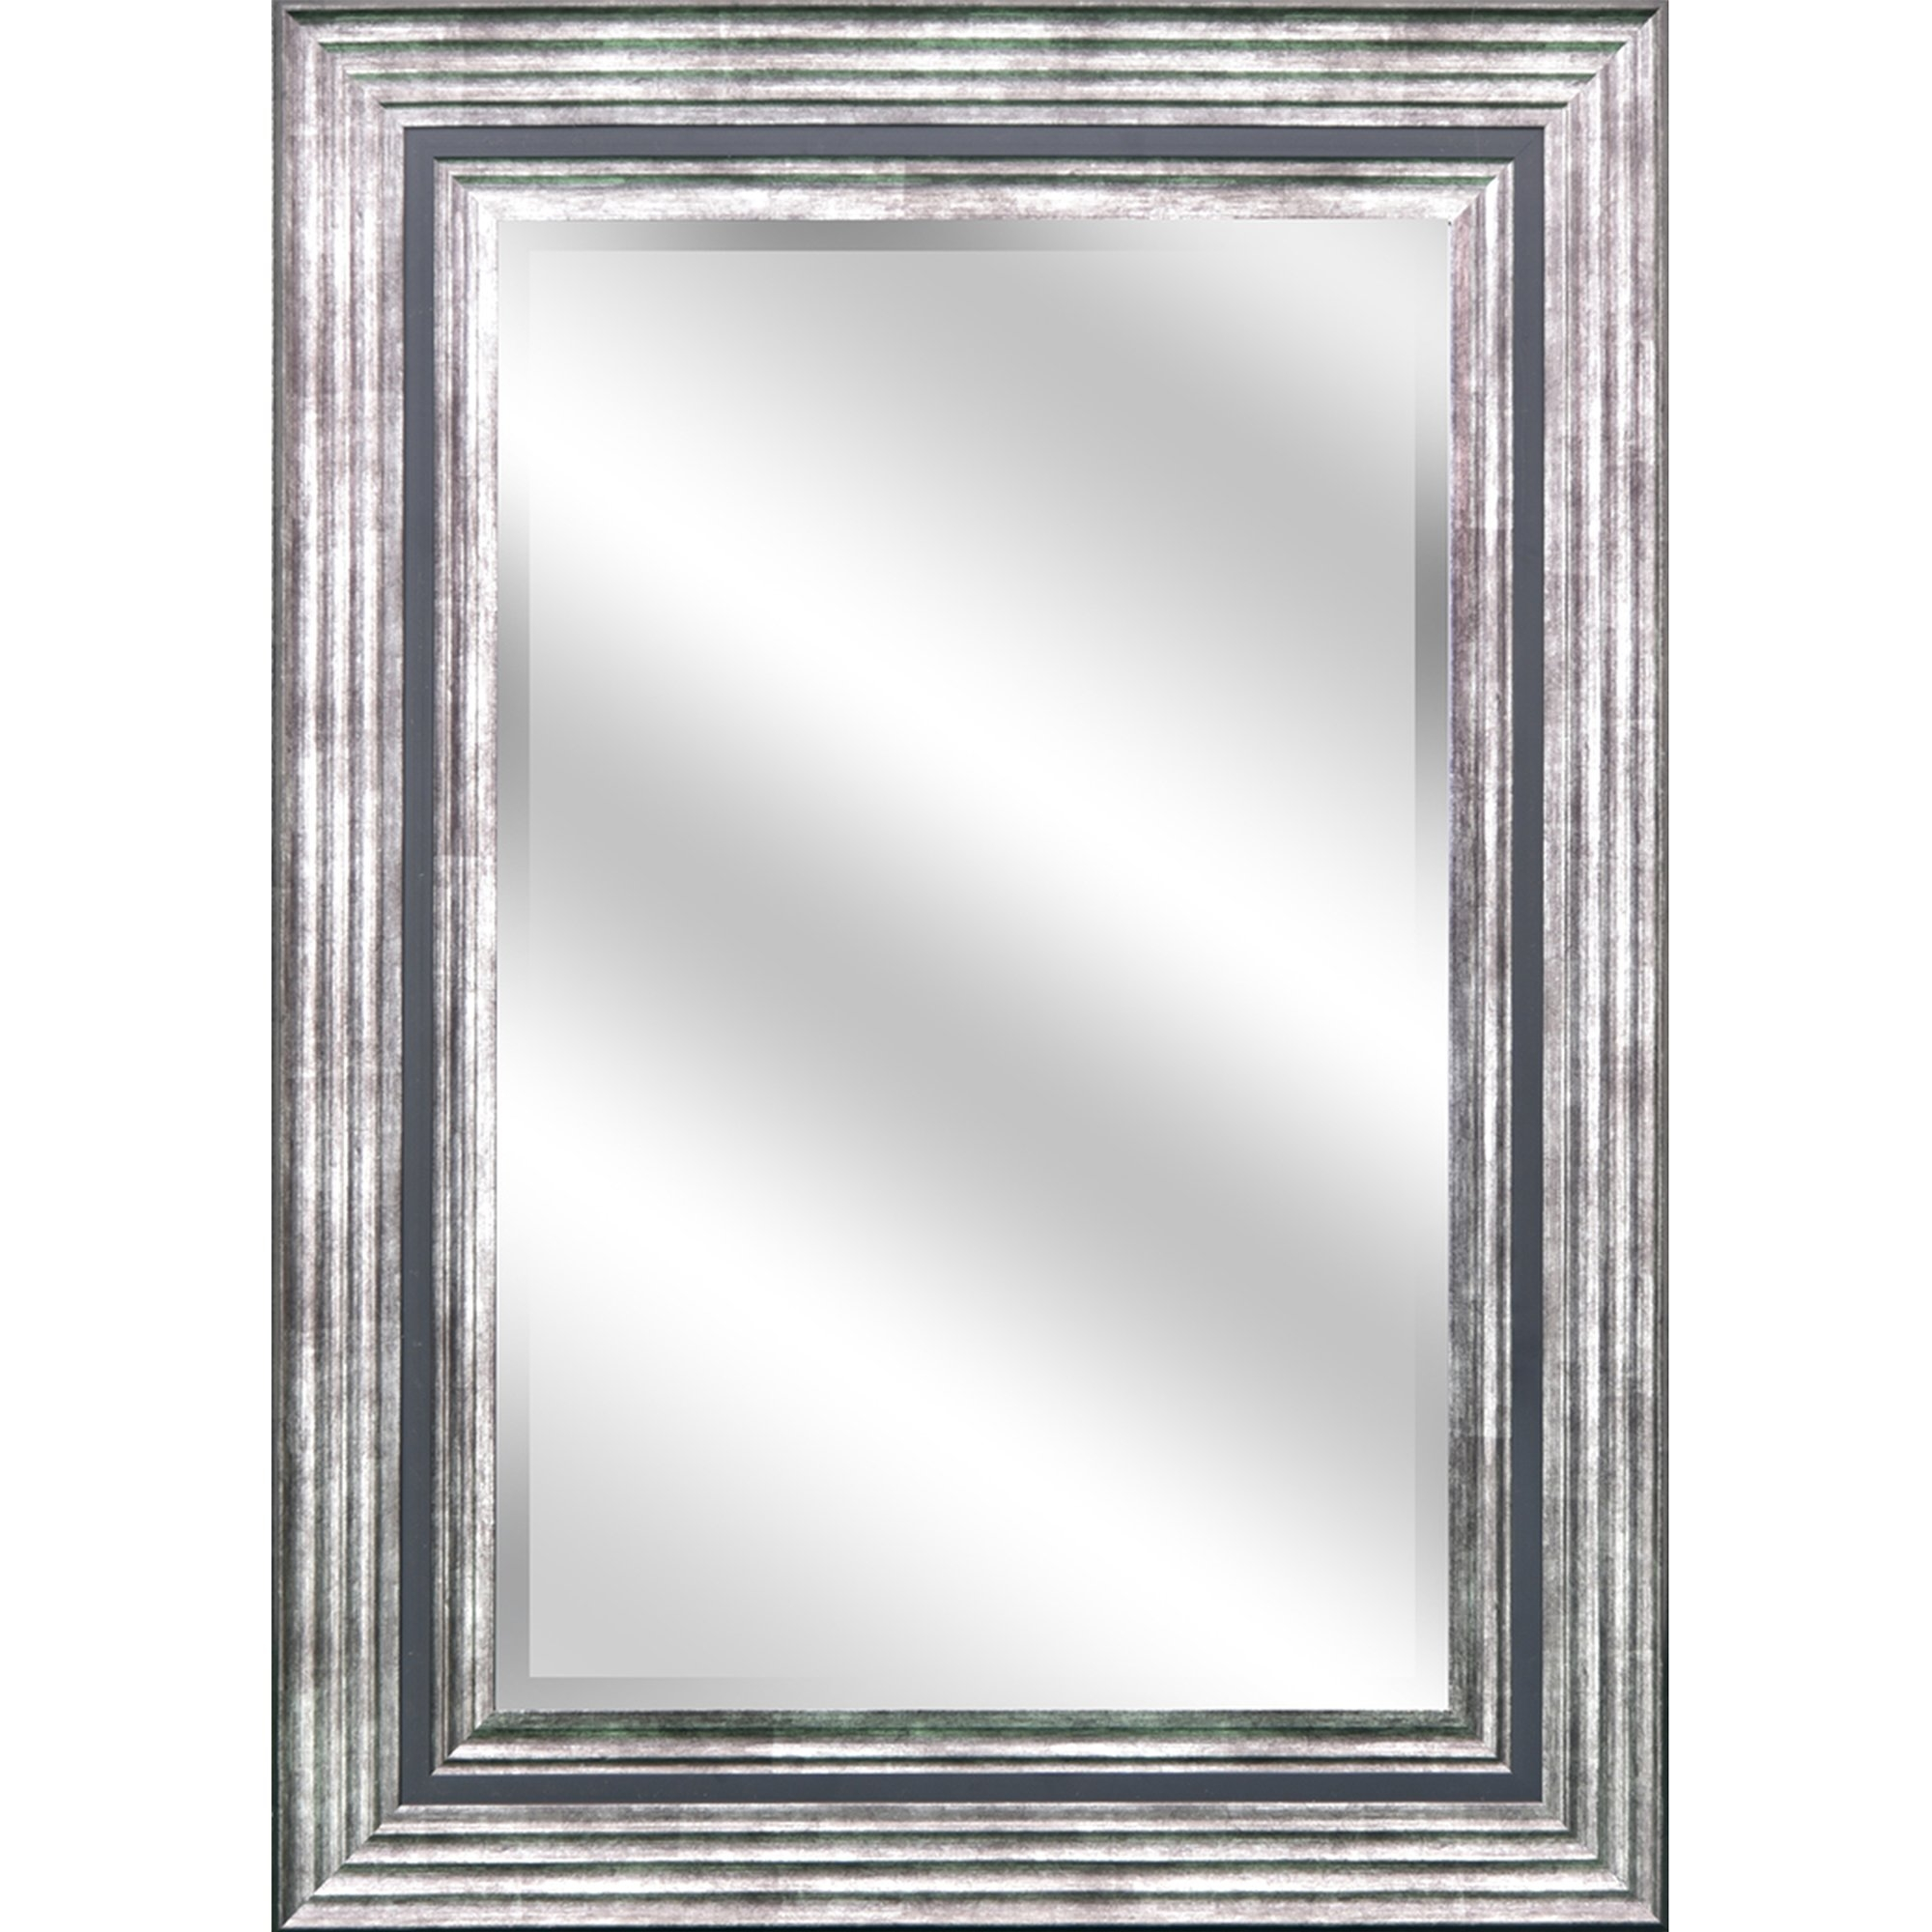 Y Decor Reflection Bevel Wall Mirror Reviews Wayfair Within Bevelled Wall Mirror (Image 15 of 15)